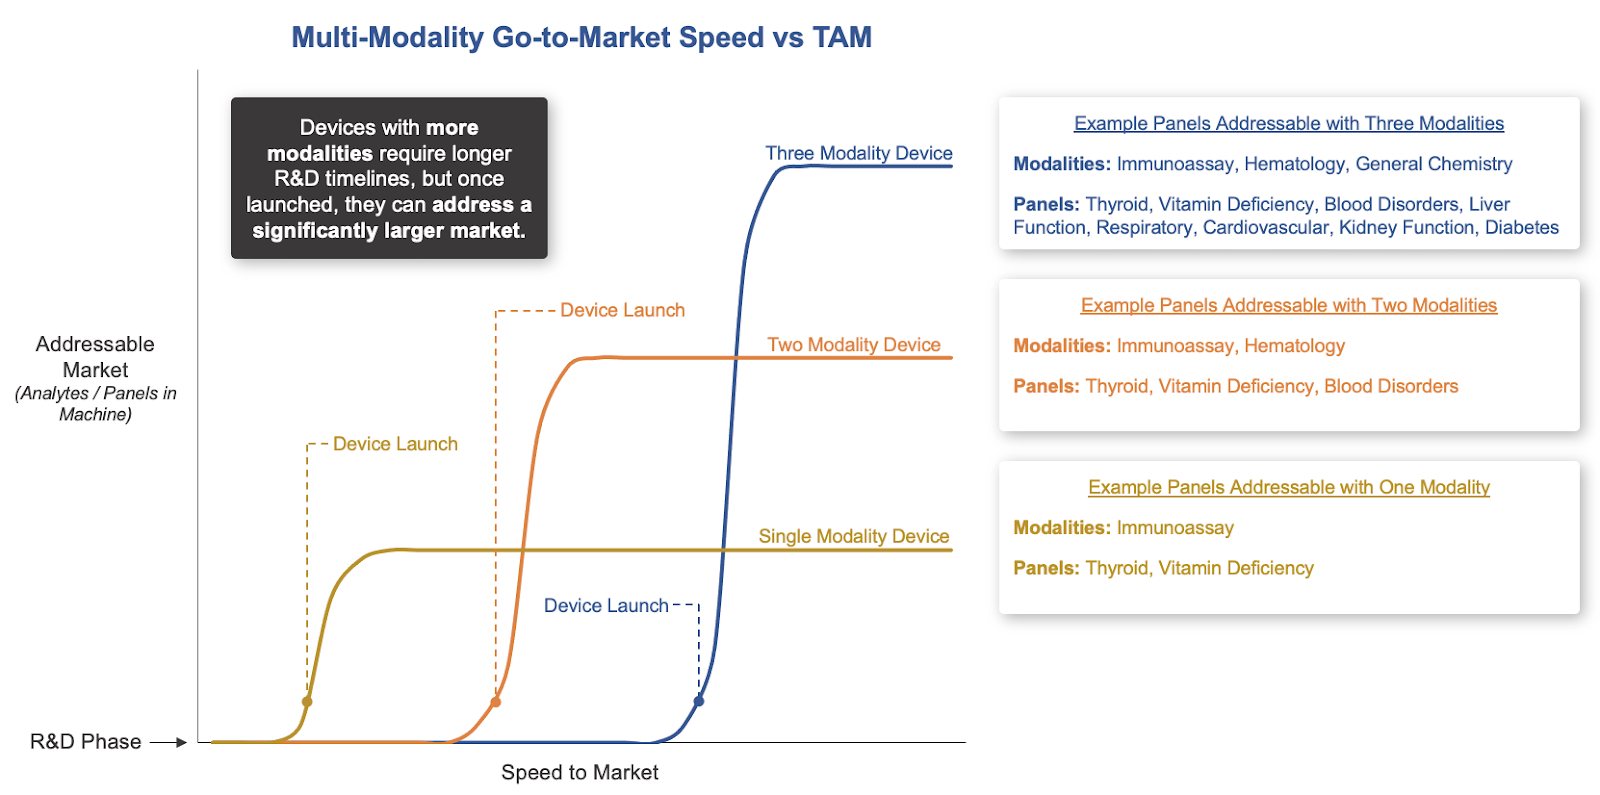 Go-to-Market Speed for Multi-Modality Platforms